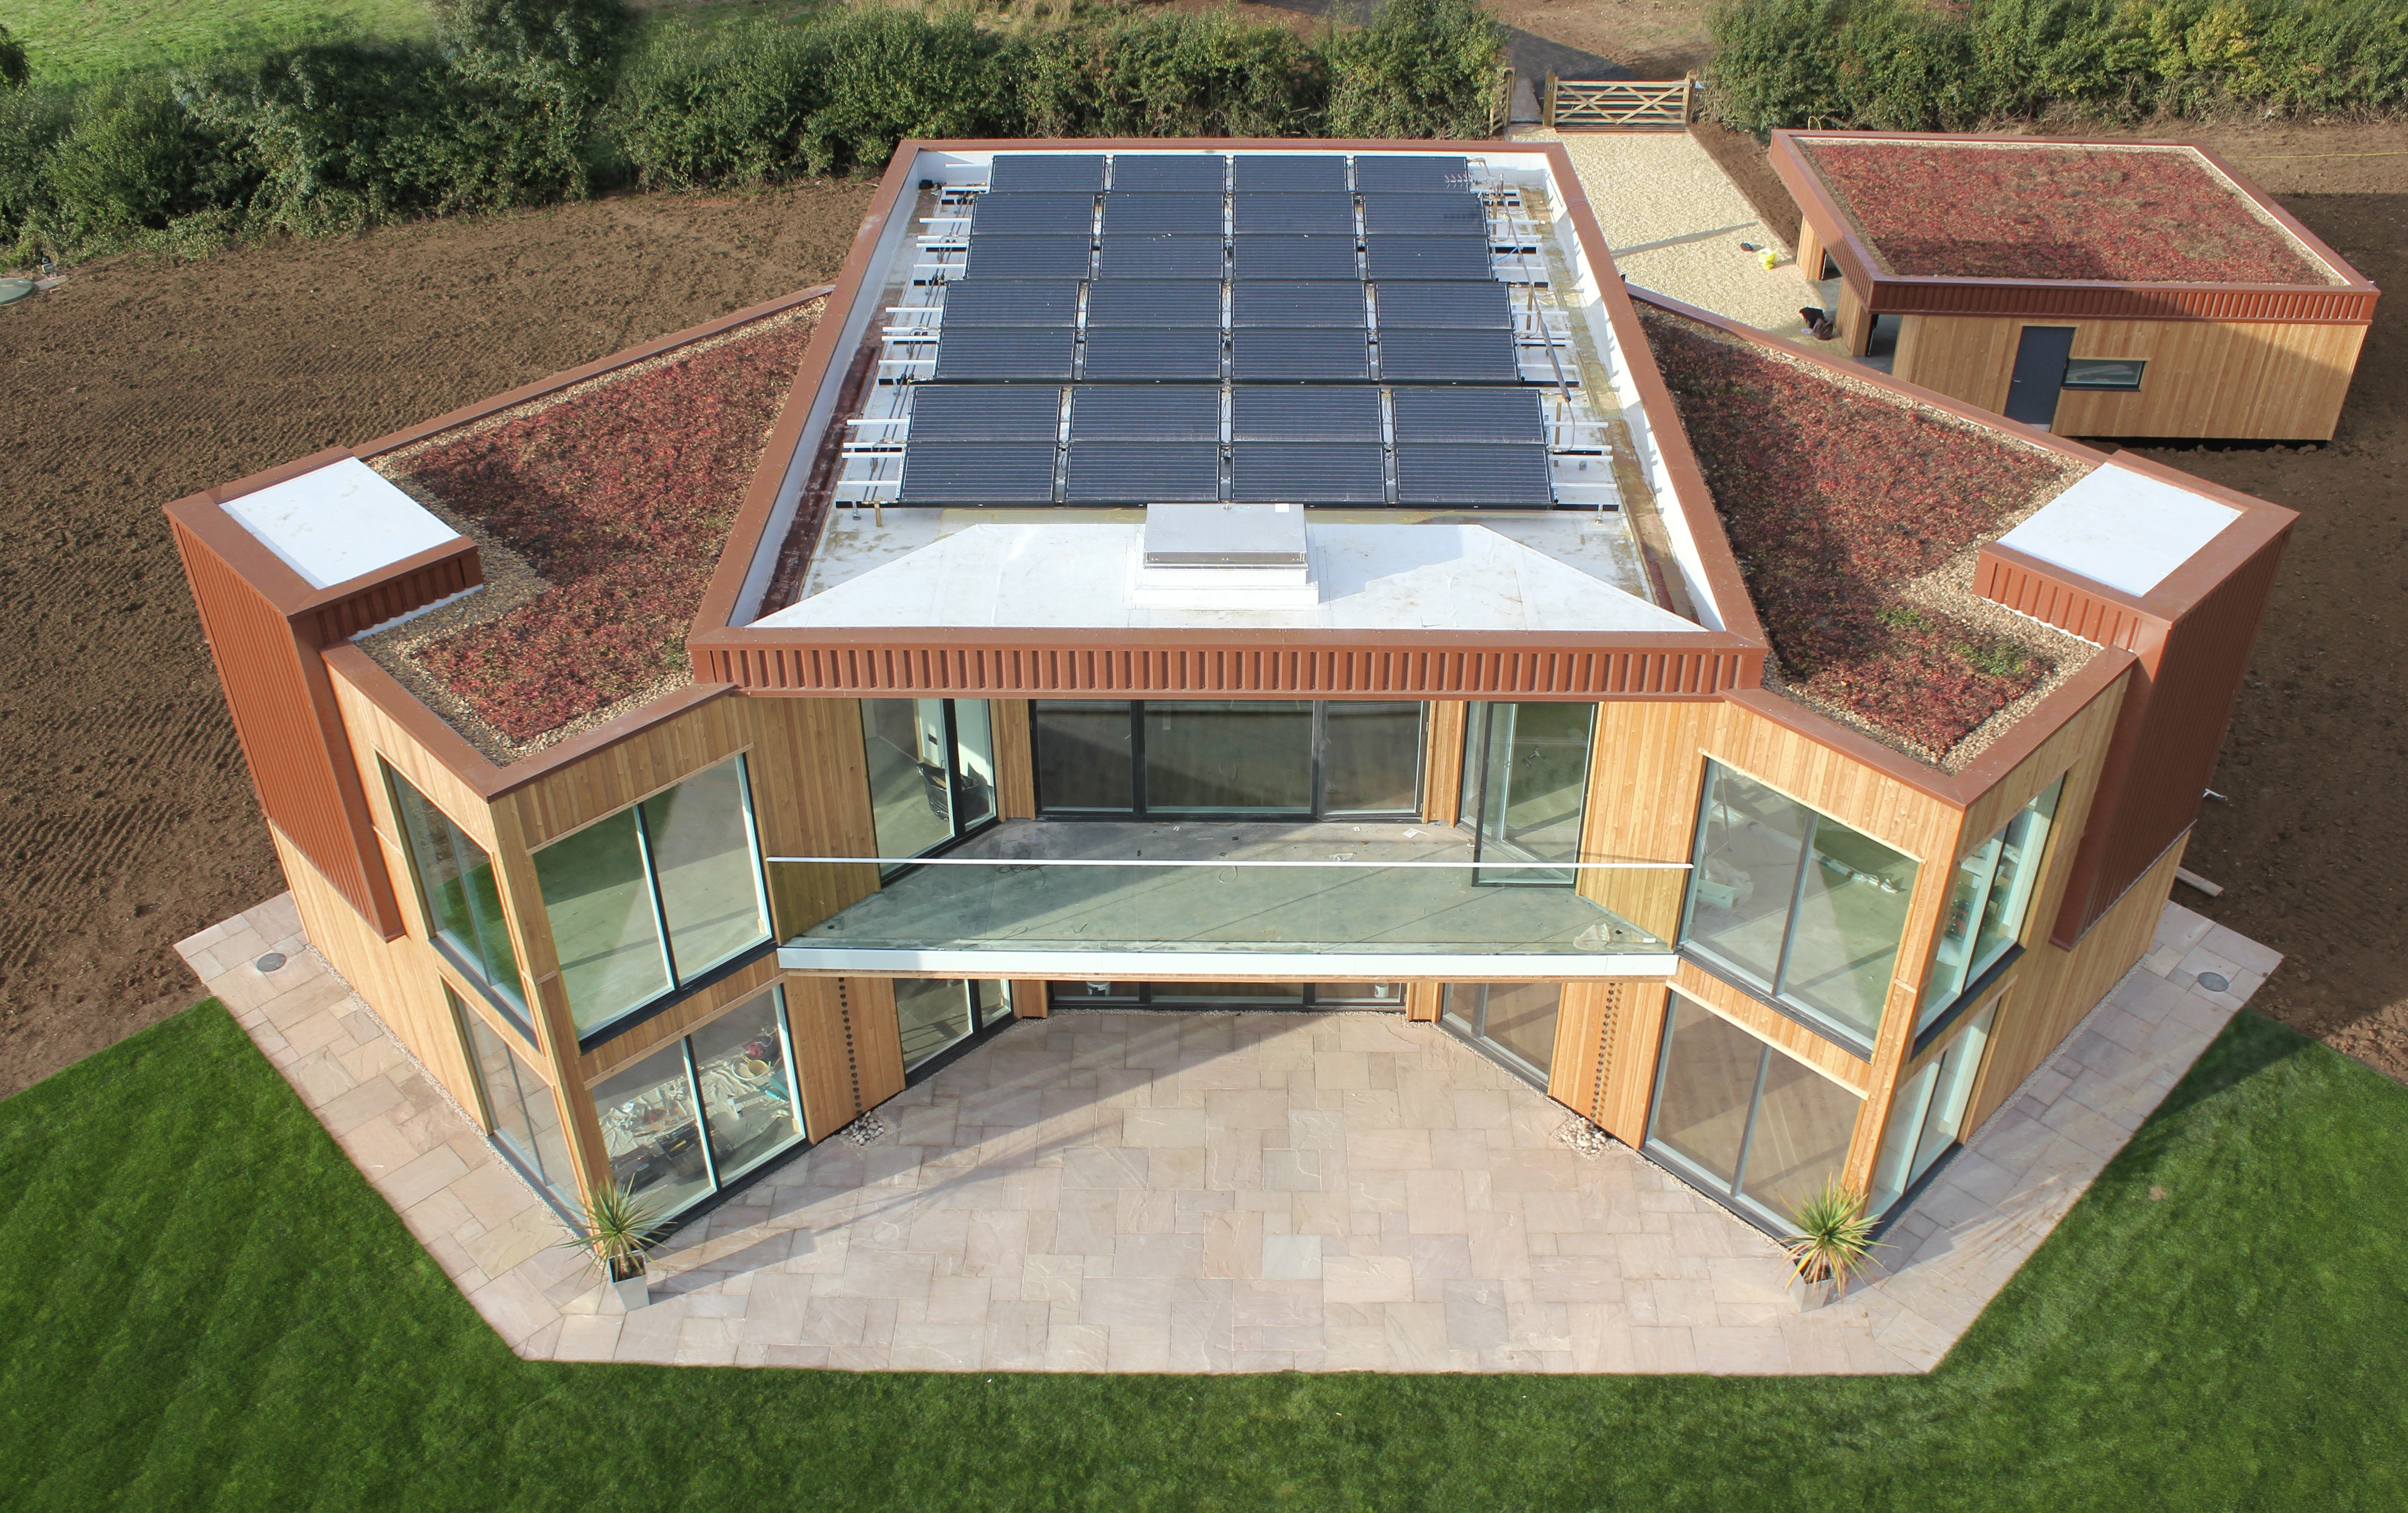 The Solar House Carbon Free Group